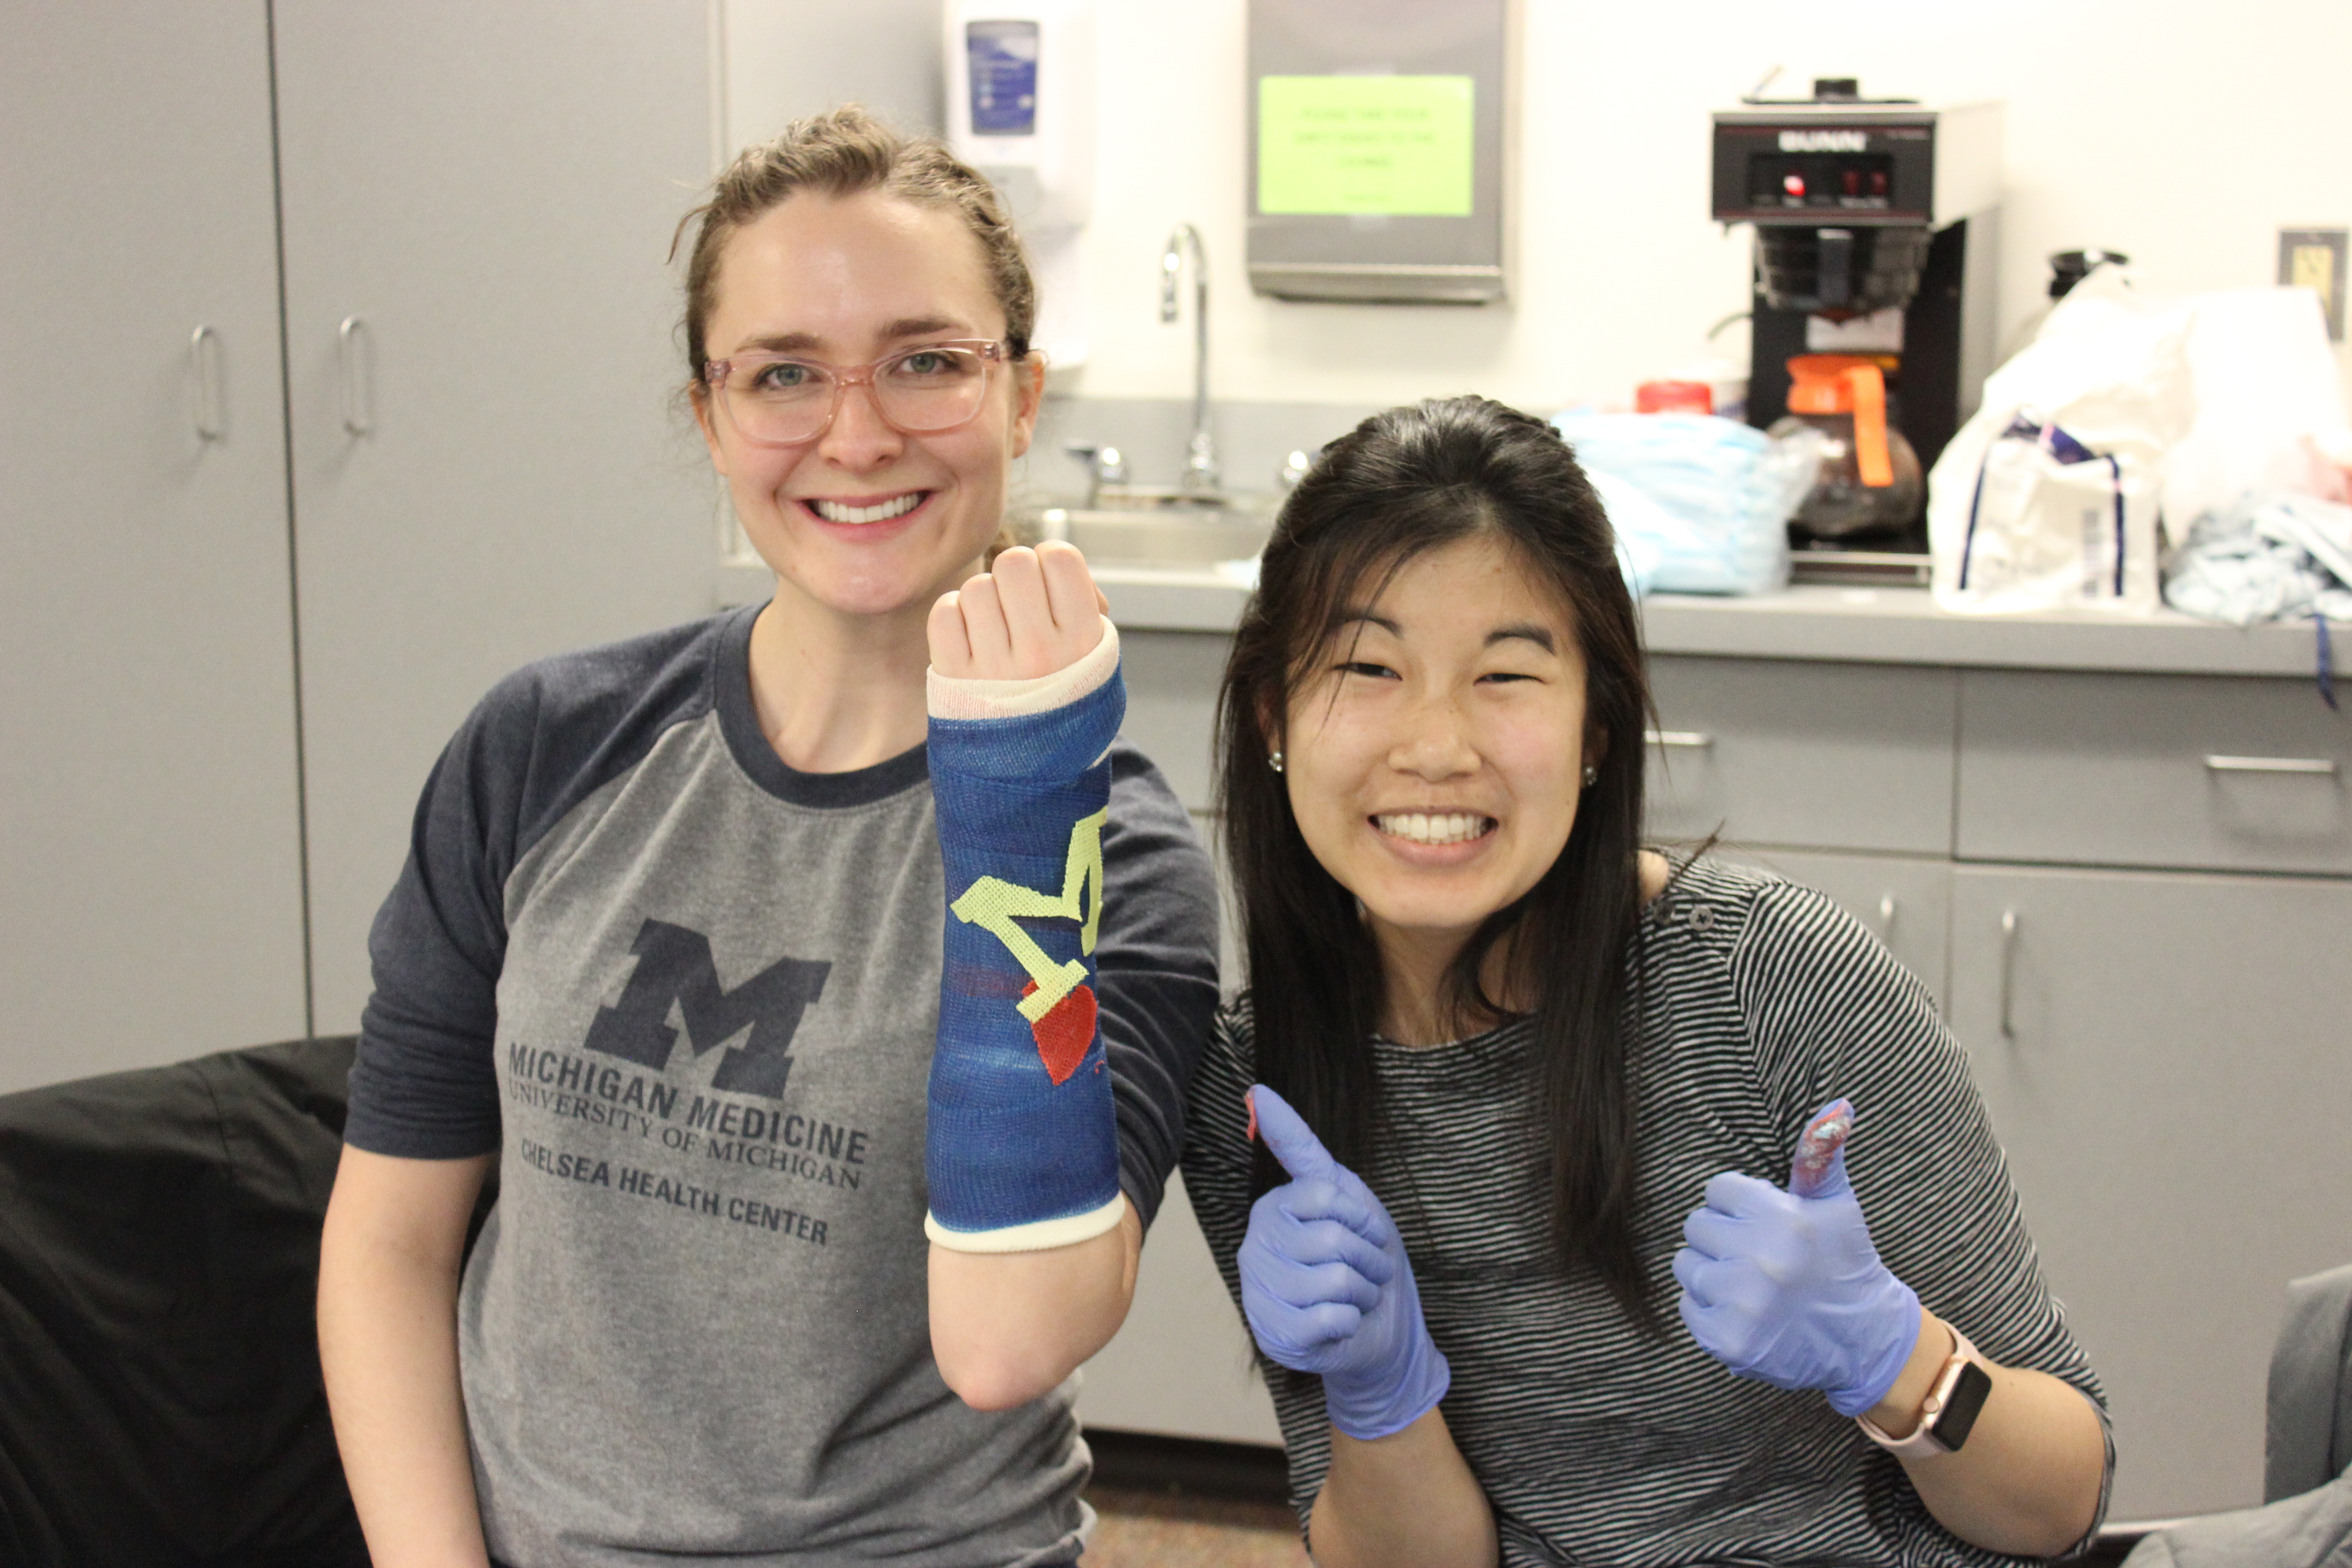 Two female residents show off a a wrist cast completed during a casting course. The case has a block M on it.